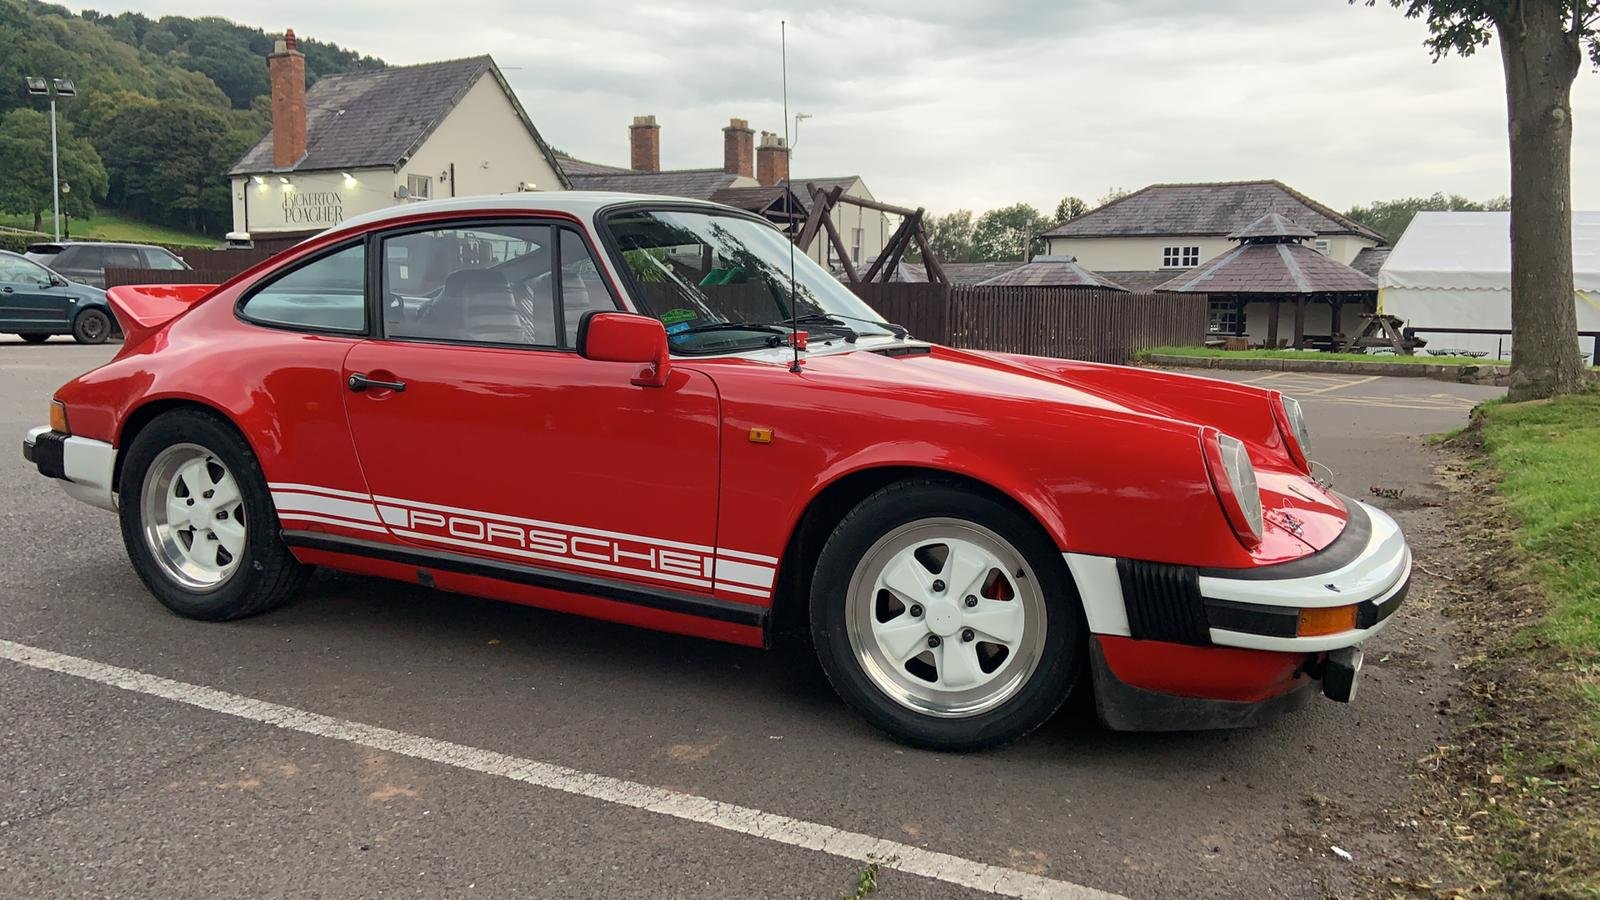 1983 Porsche 911 SC - Recently toured Iceland For Sale (picture 4 of 5)